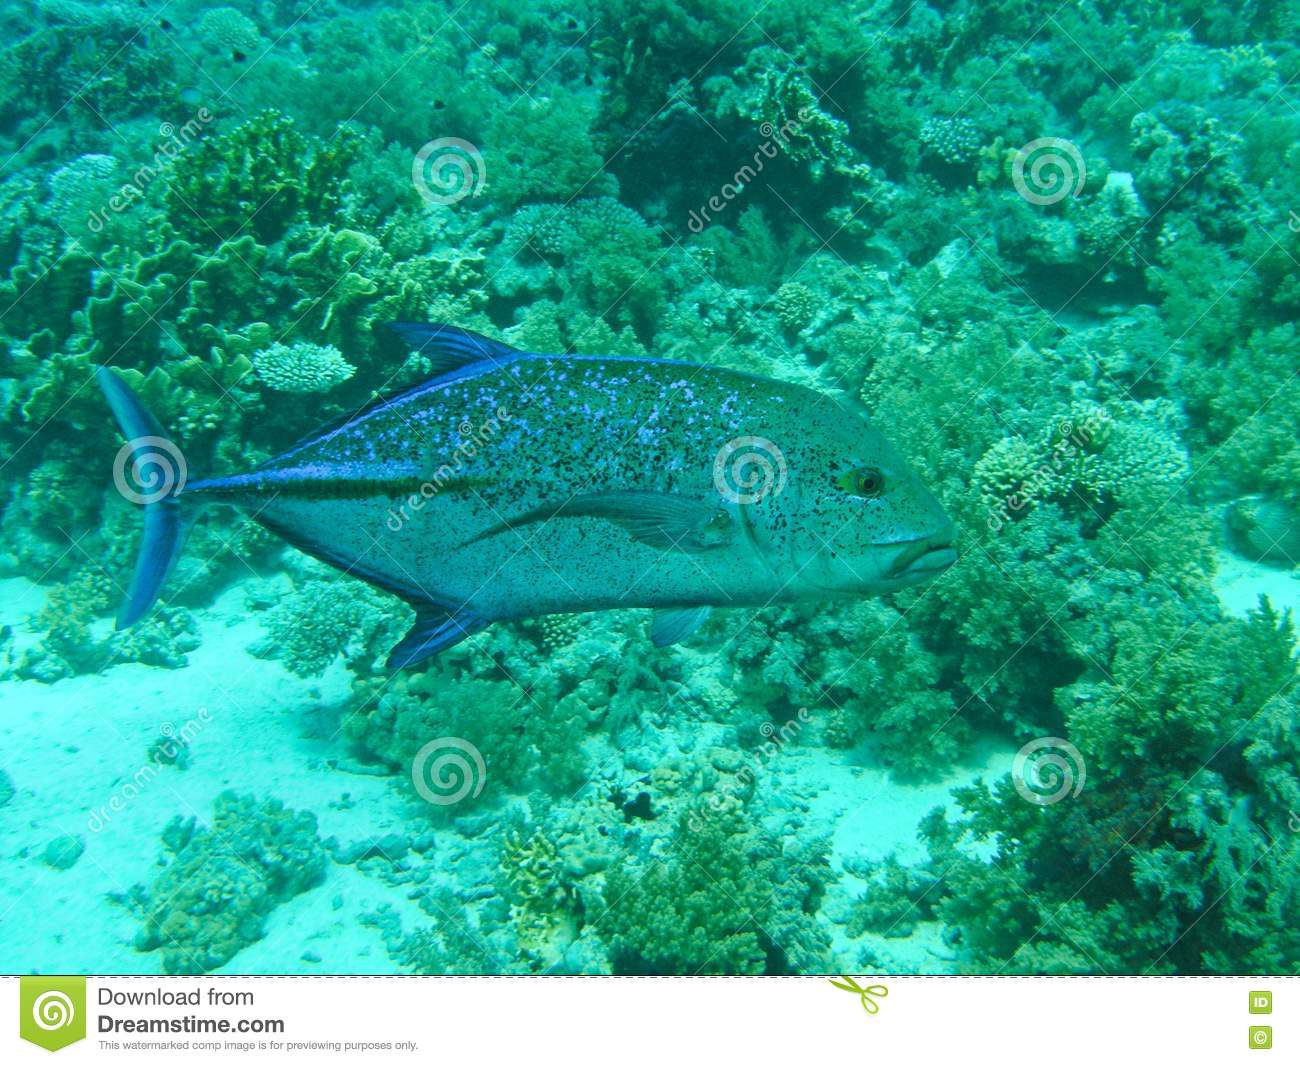 Blue fin jack fish stock photography image 6480332 for Blue fin fish